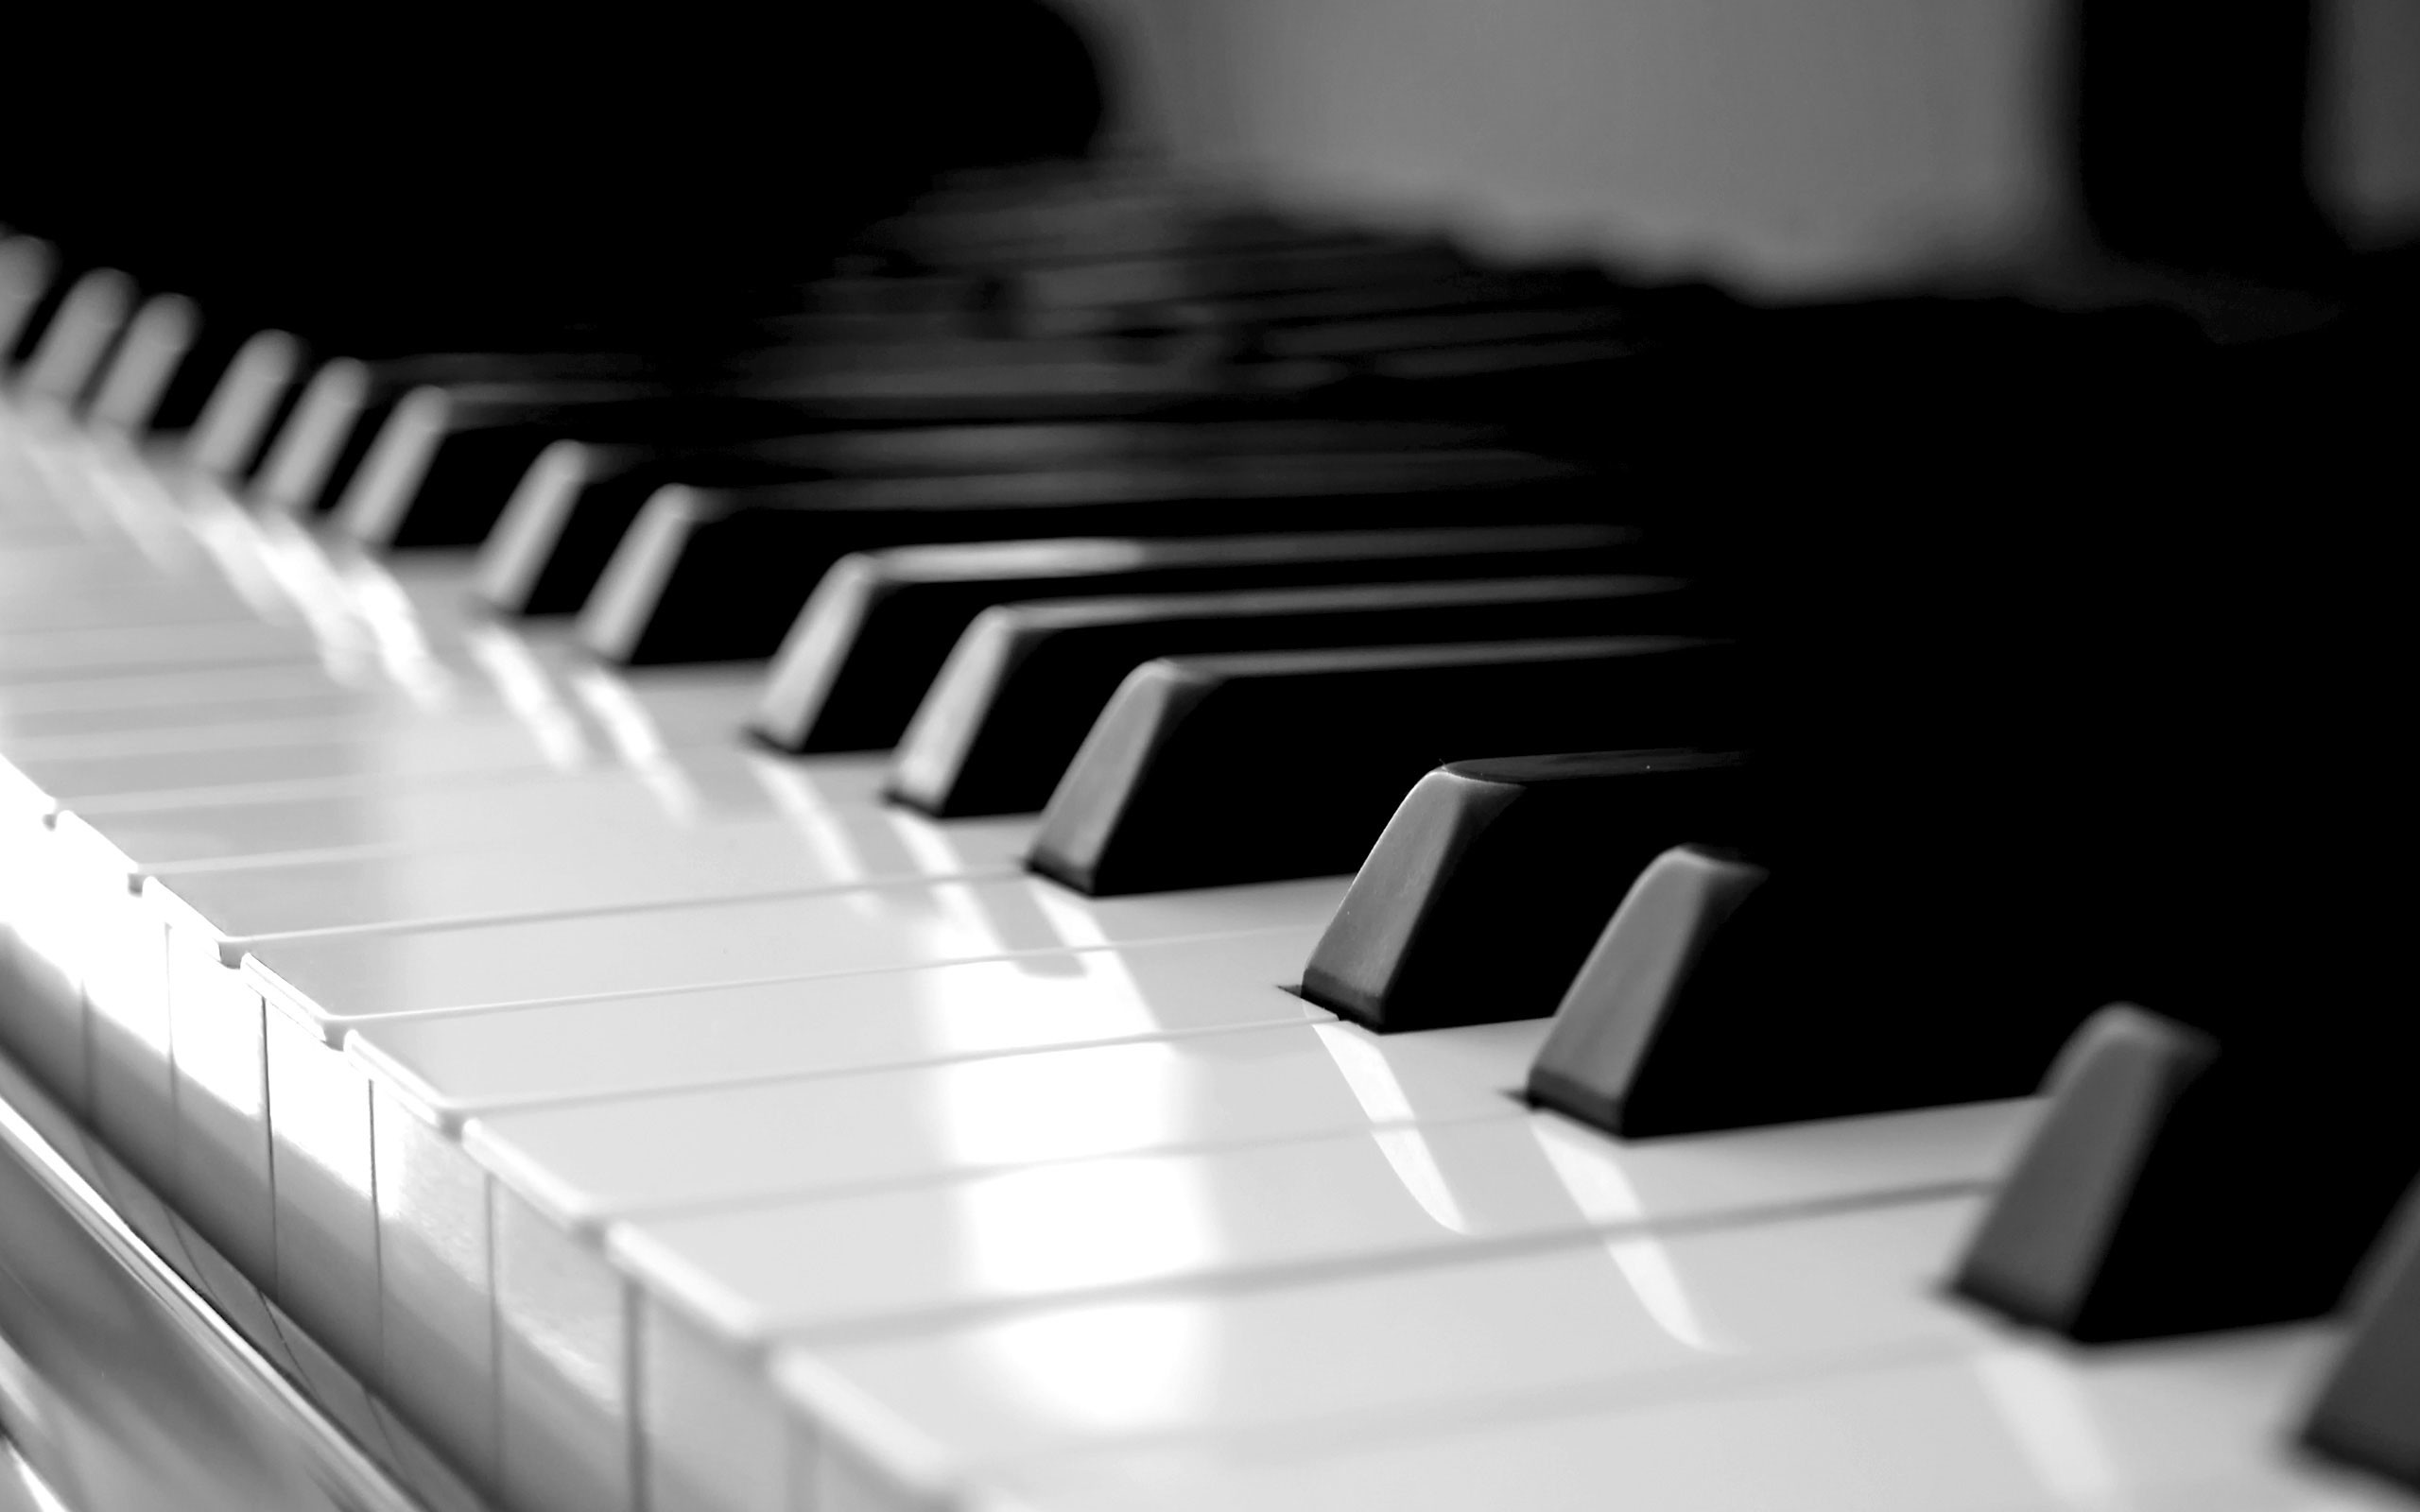 2560x1600 Piano Wallpaper